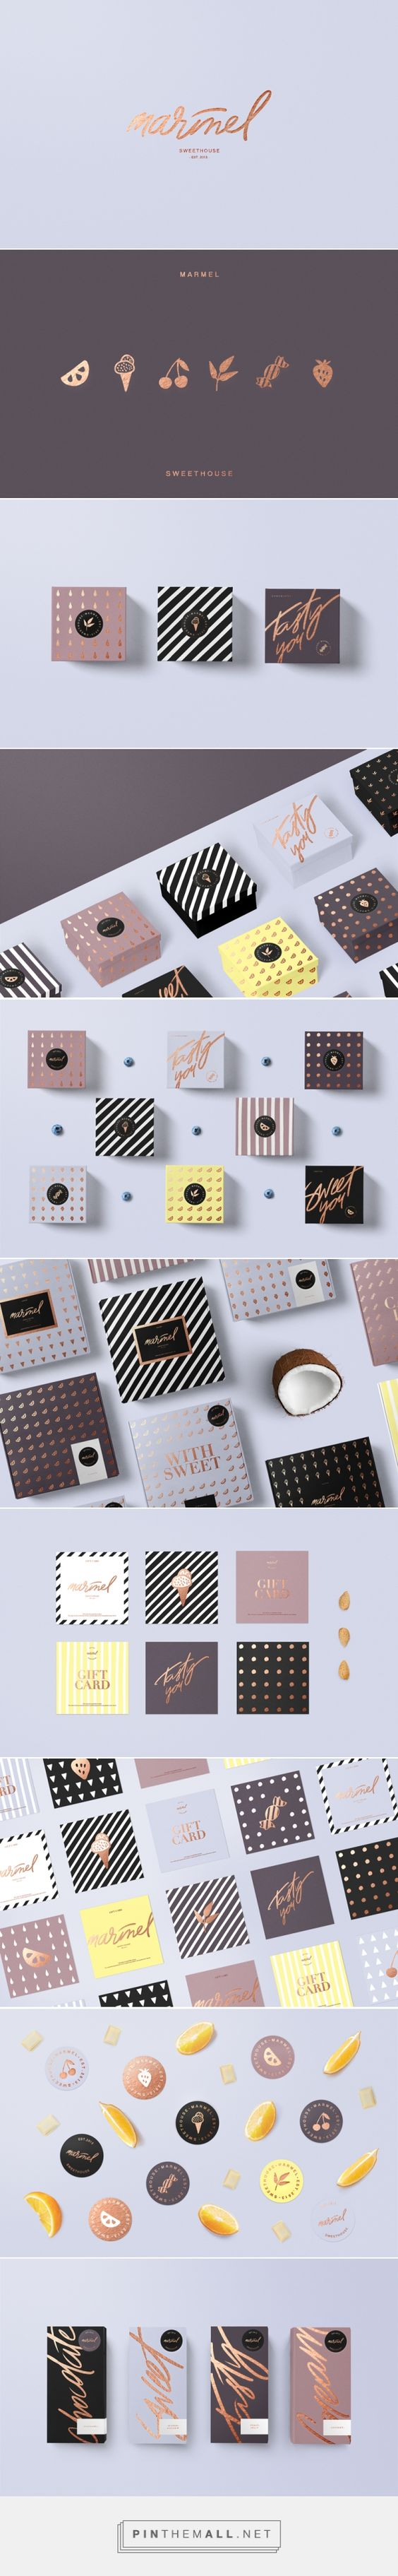 The bronze, the iconography, the different pattern introduction to show how the brand can evolve is great